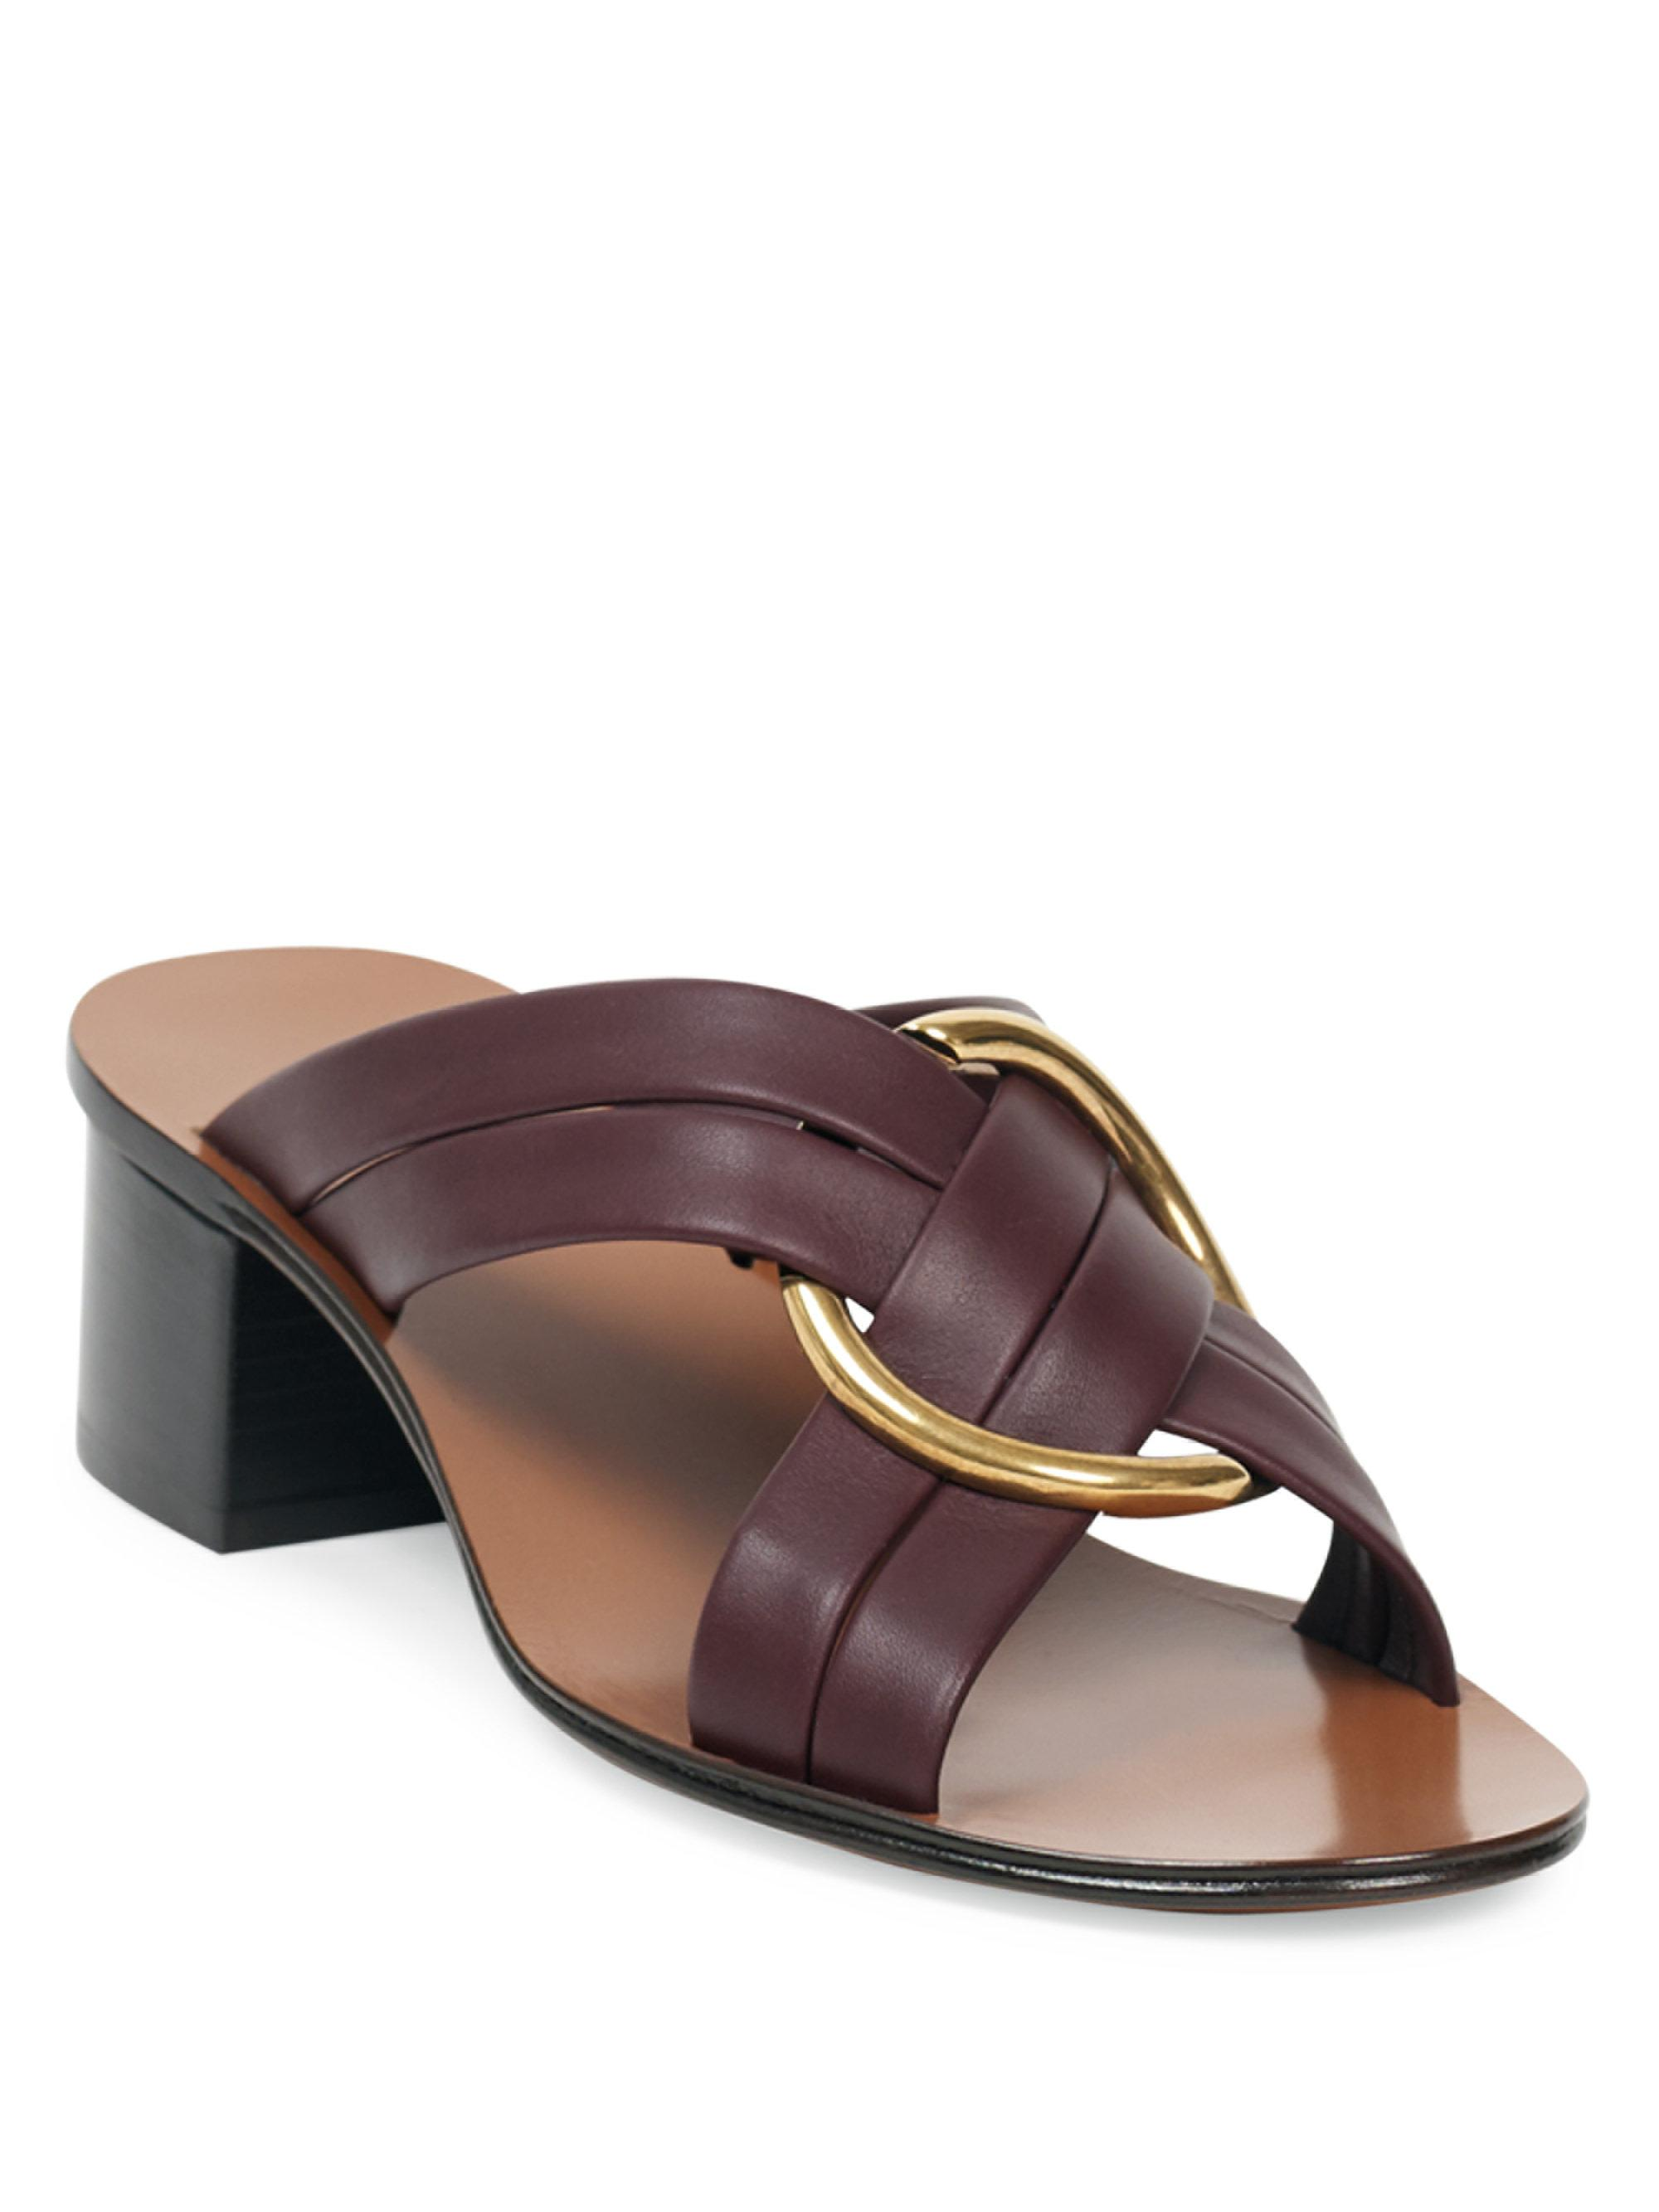 Rony leather sandals Chlo 8czHbH9gZ